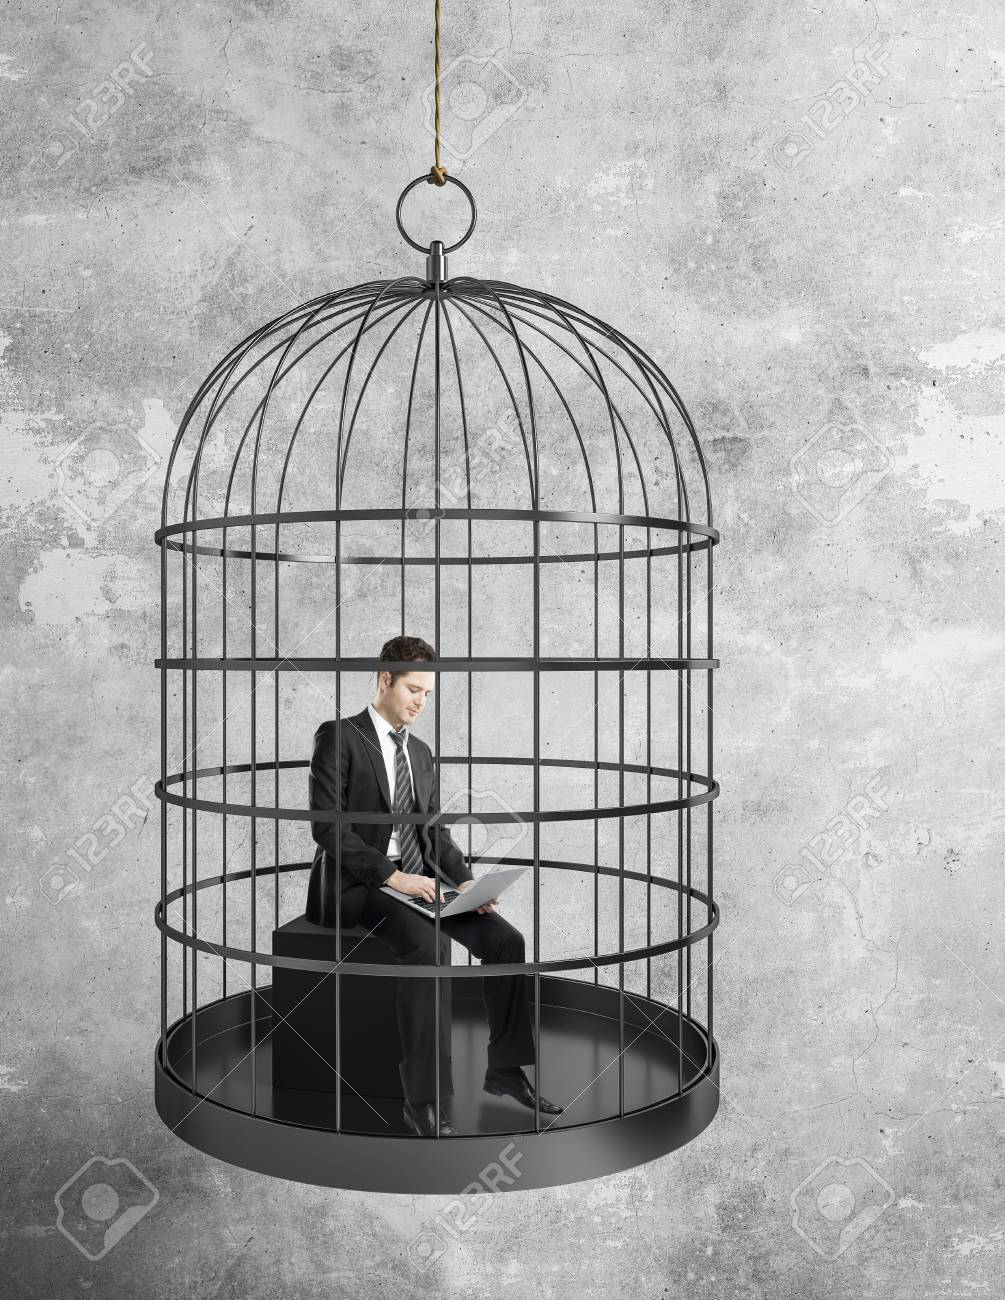 businessman working hard with laptop in birdcage on concrete wall background. Freedom and innovation concept - 104891560